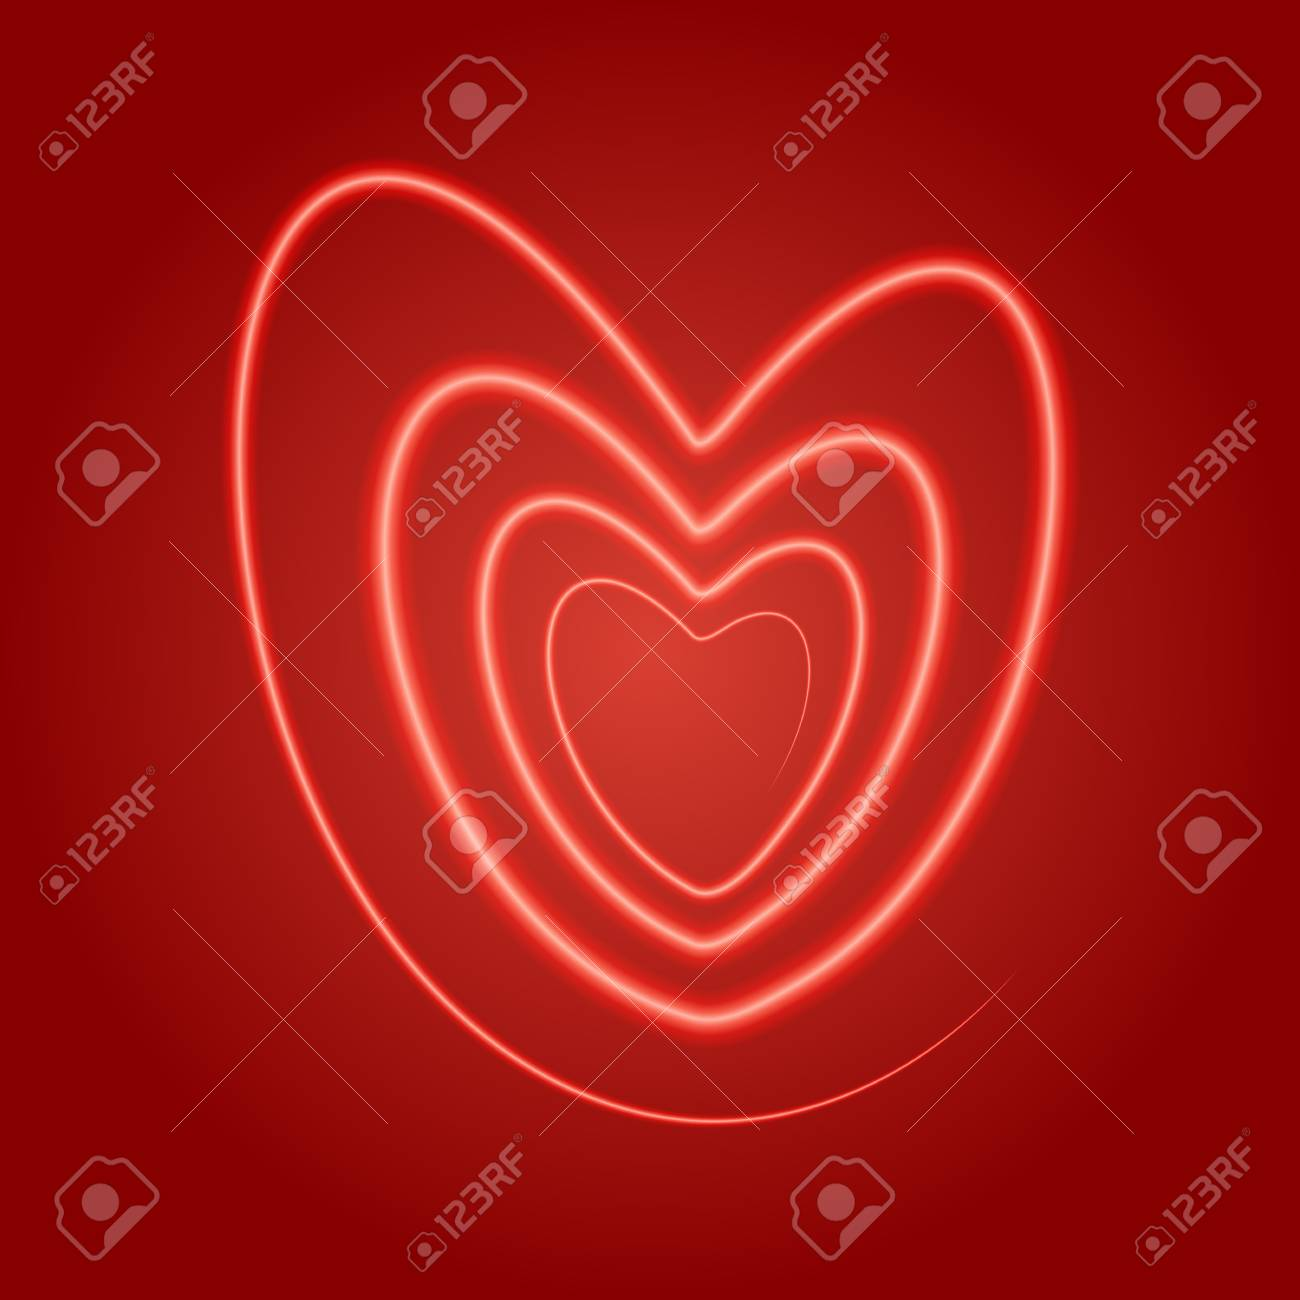 Vector Illustration Heart Spiral Of Lines On A Red Background